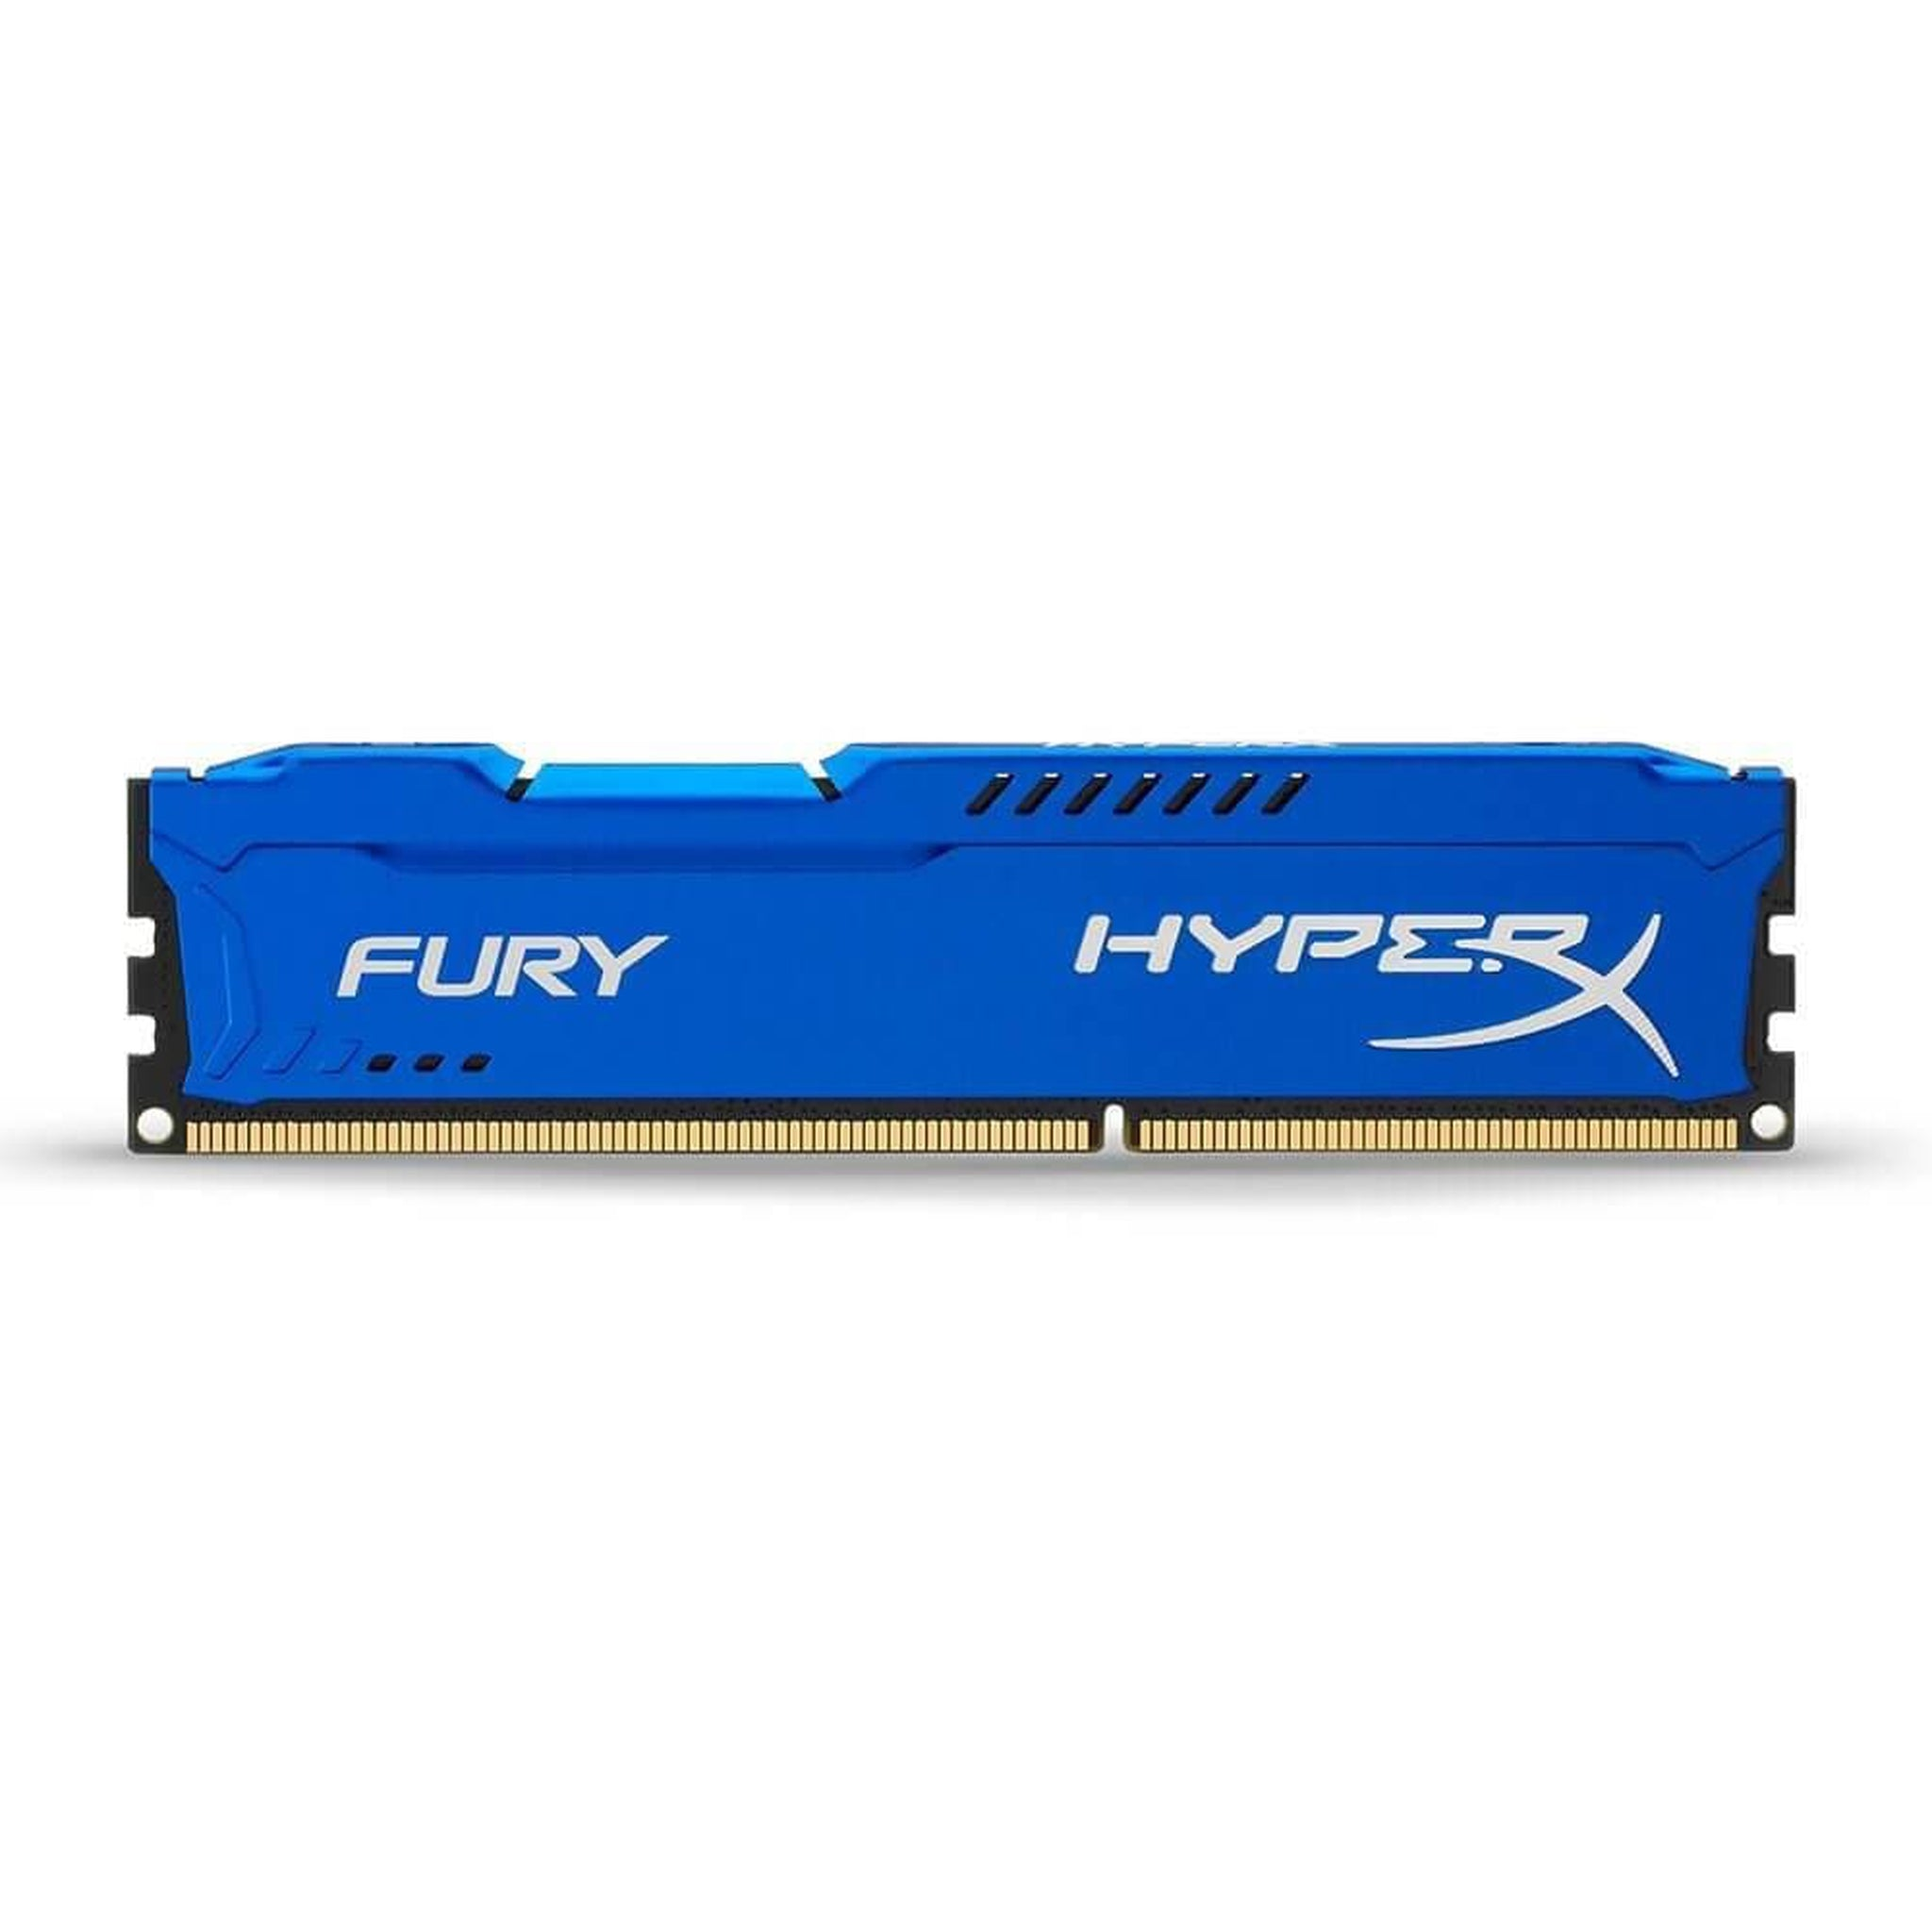 KINGSTON HyperX FURY 4GB DDR3 - Choice Computer Technologies